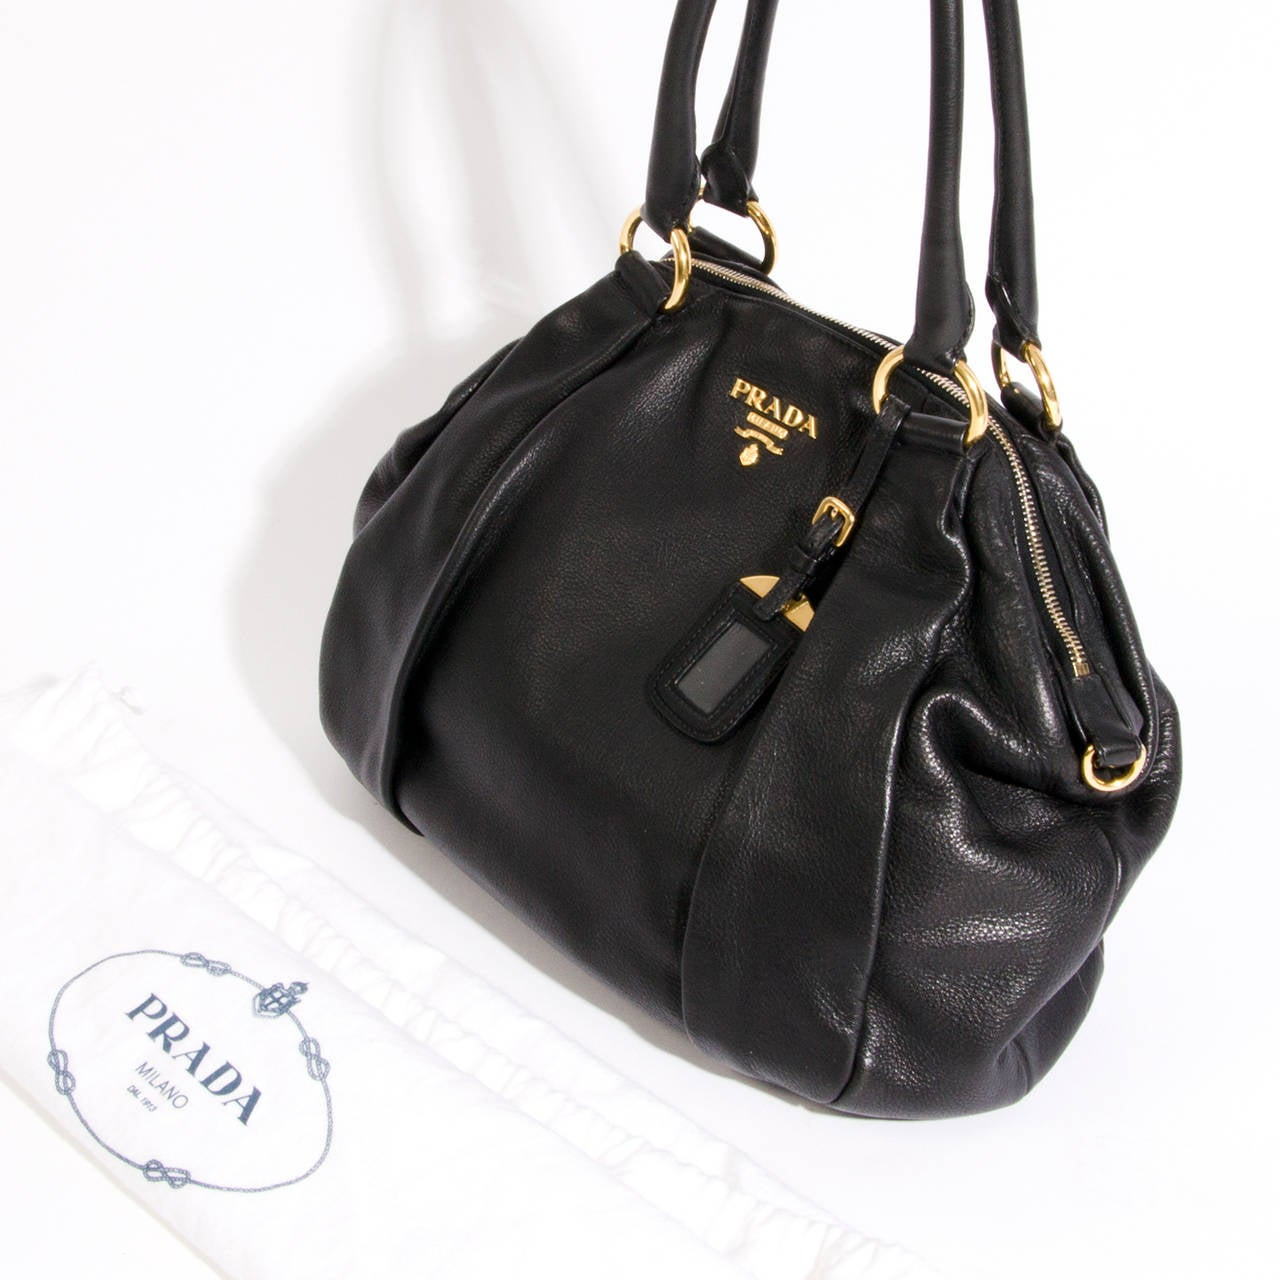 Color Prada Nylon In Bags 10